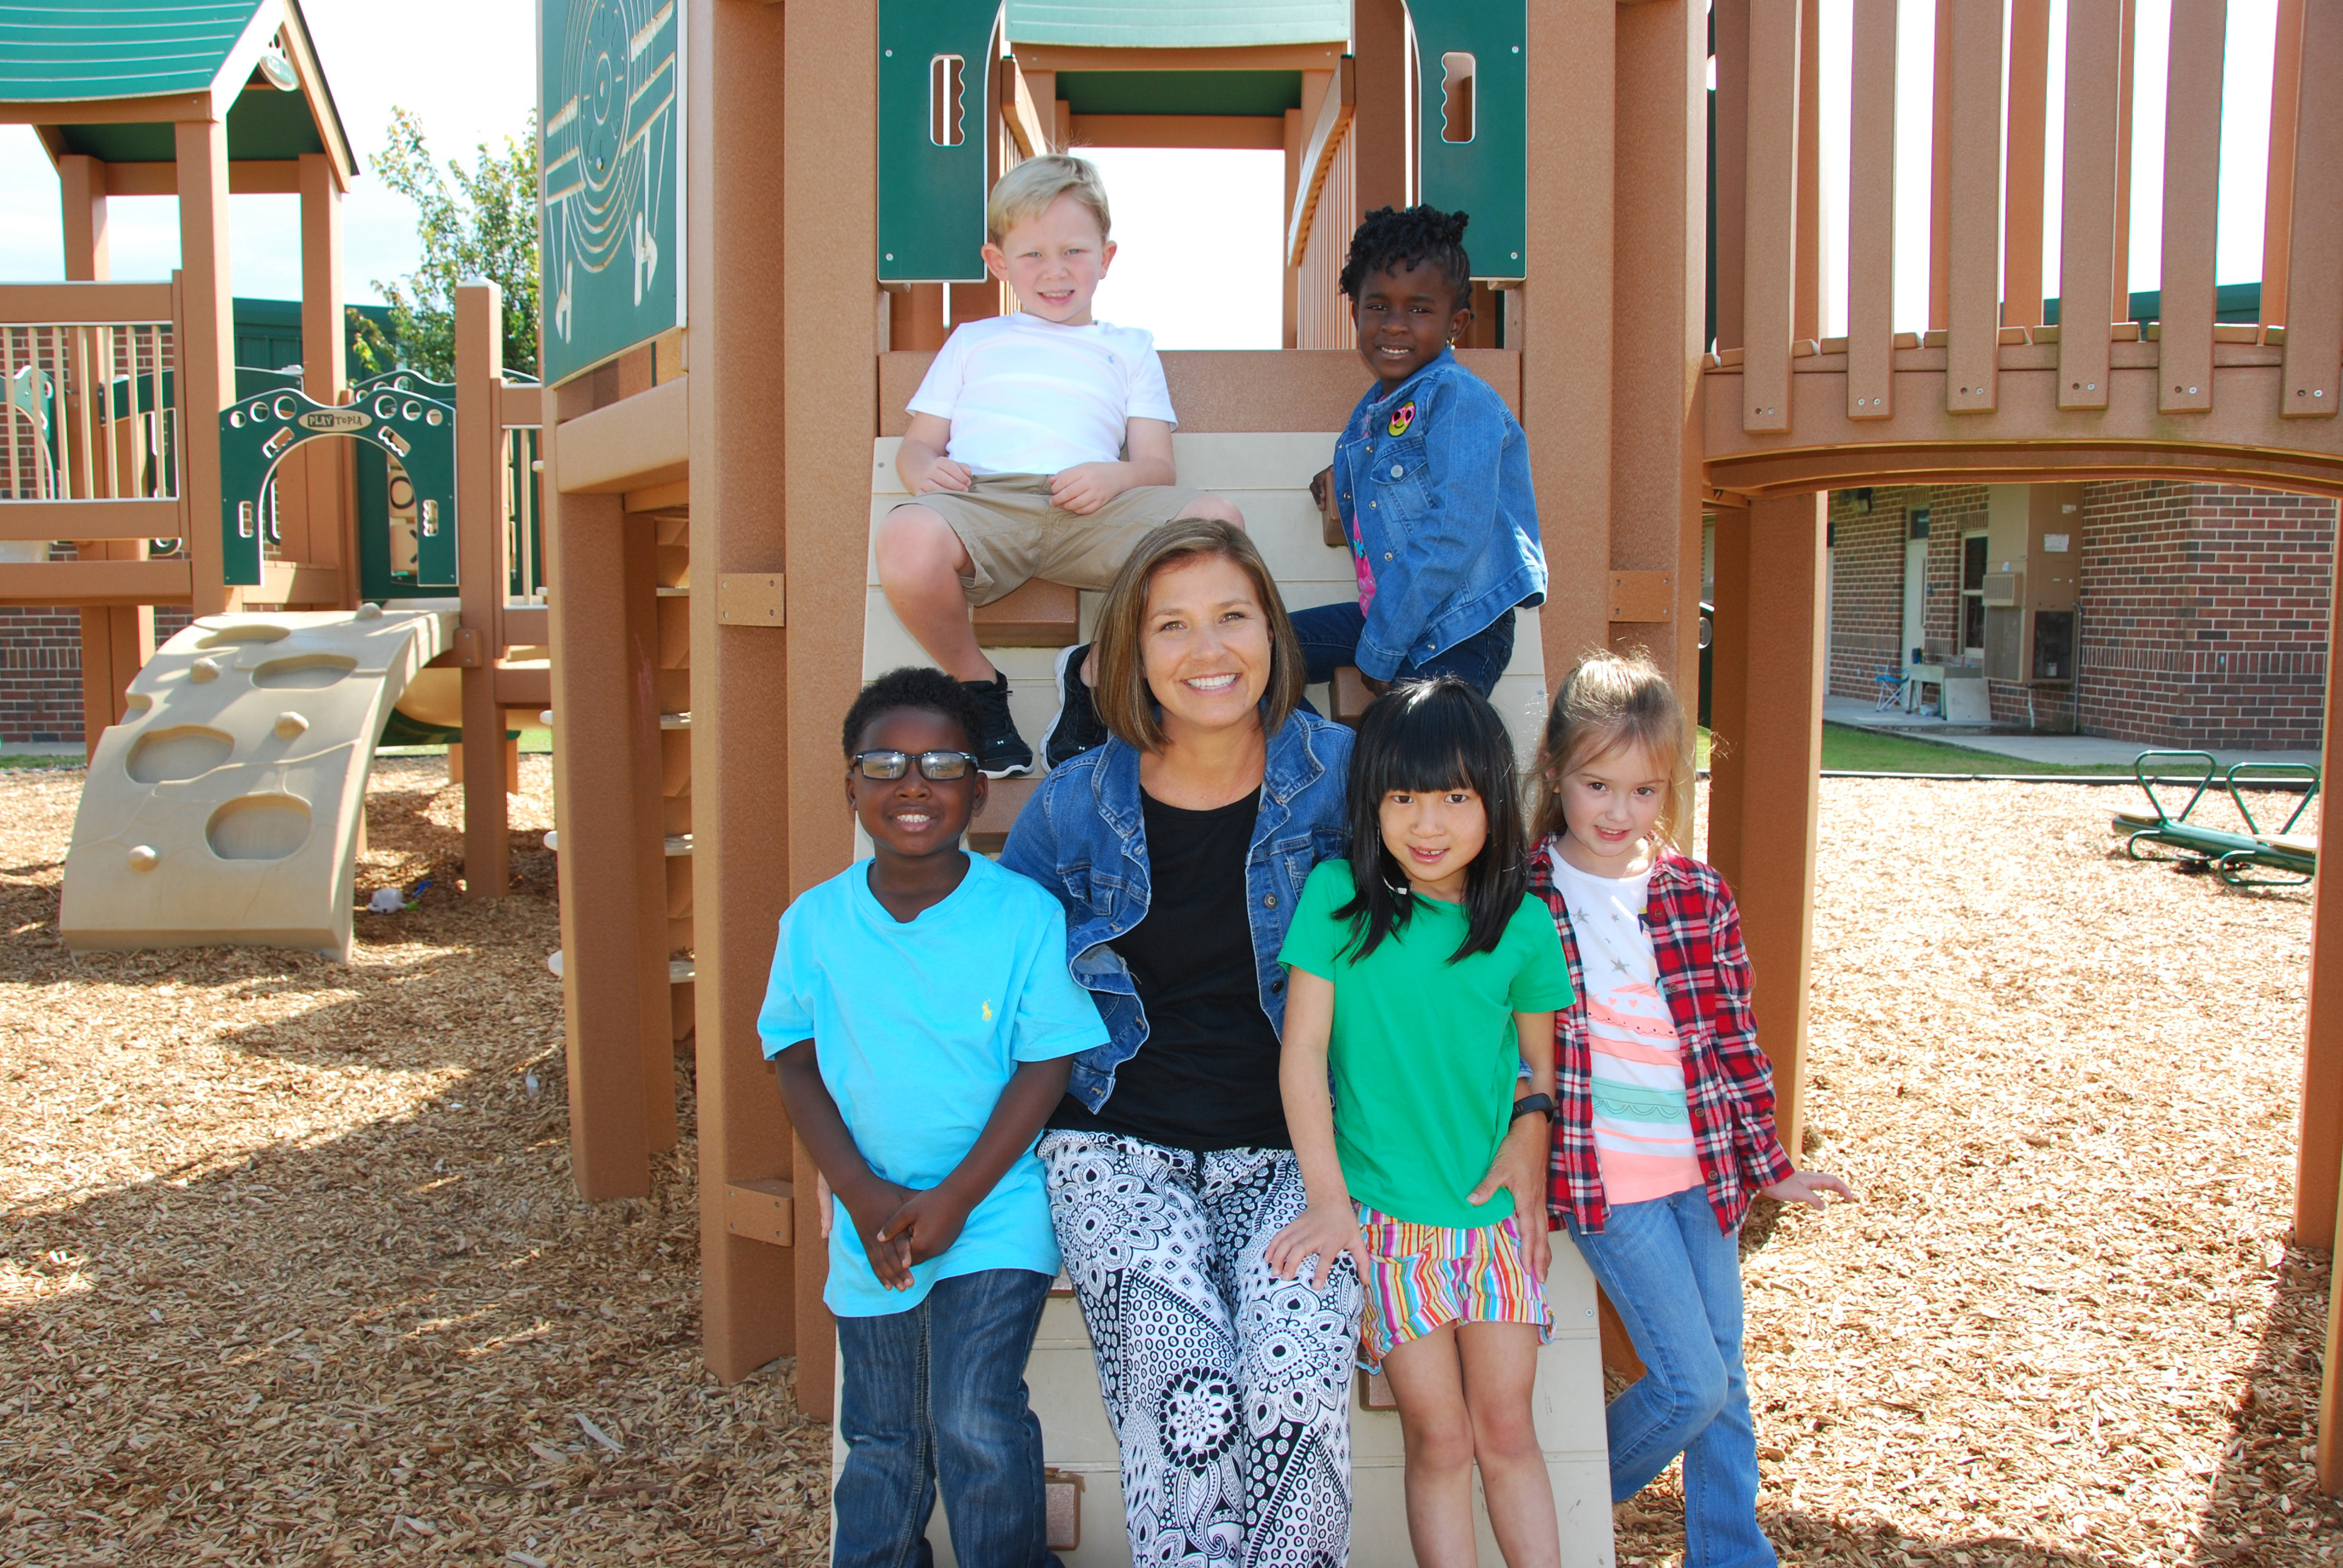 On the playground is Dee Gaines (center) surrounded by kindergarten students Xalen James, from left, Sam Stewart, Destiny Hobbs, Rosie Cooper, and Blake Knisely.